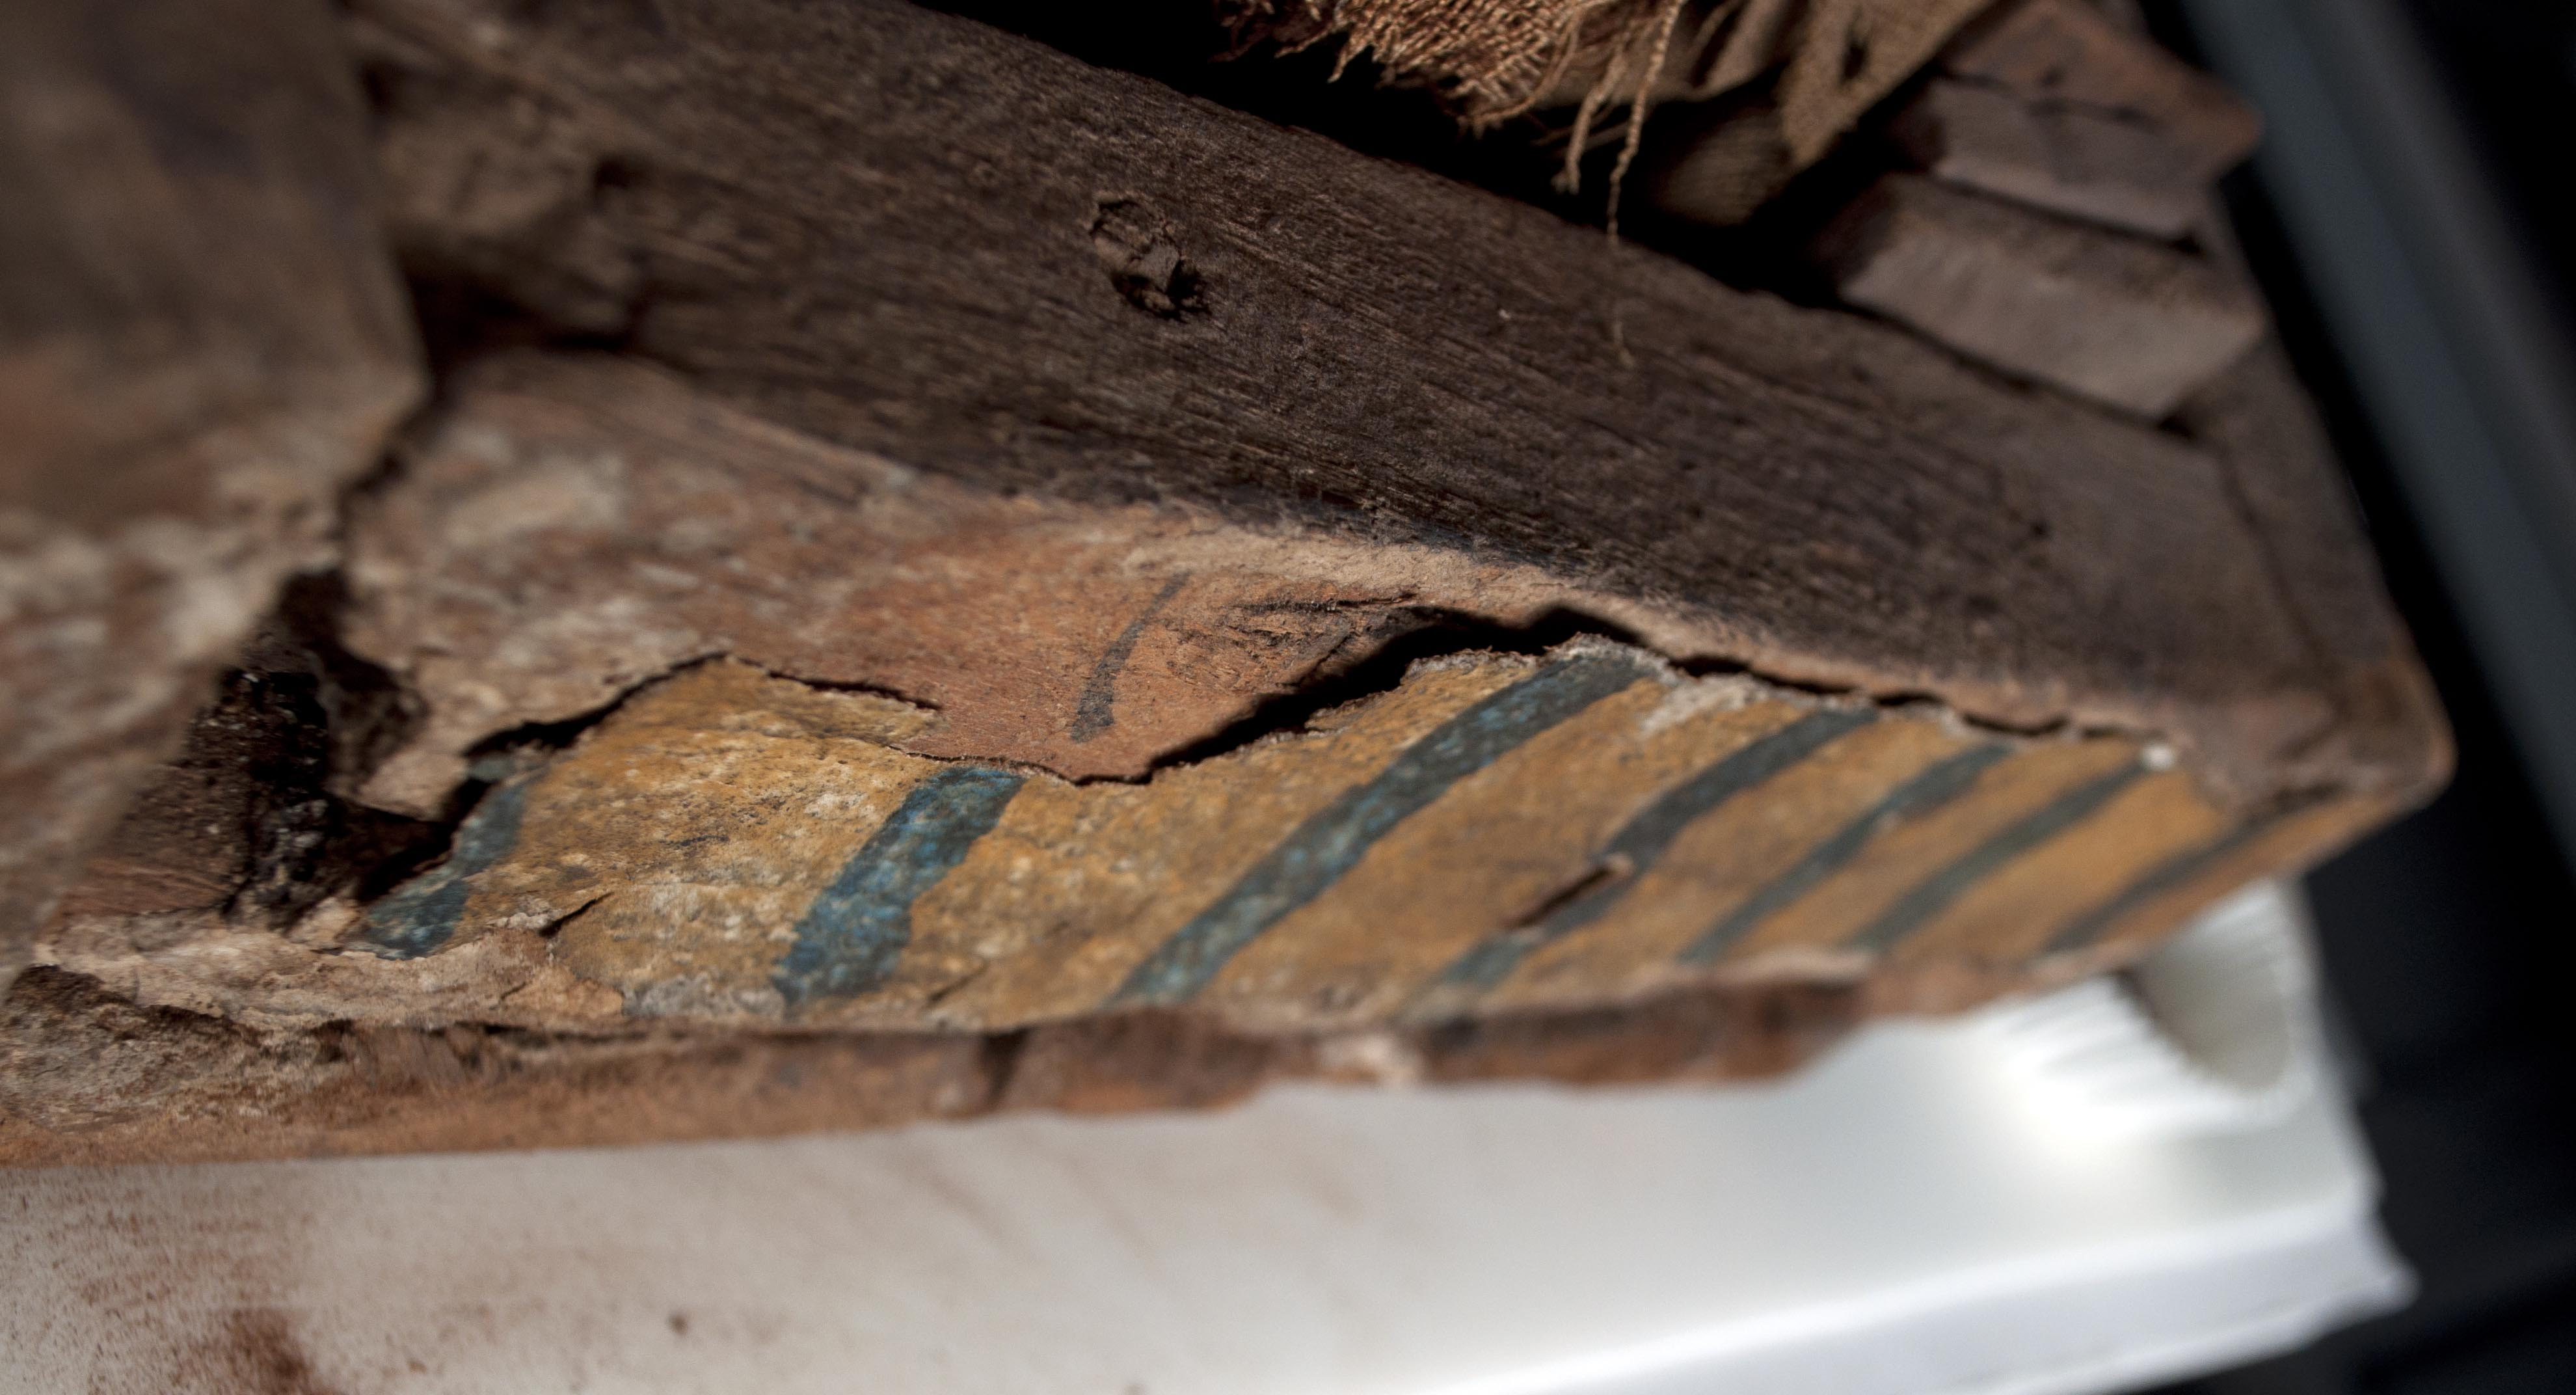 Detail of the exterior foot of the coffin, showing separation of the linen, plaster, and paint from the wood.